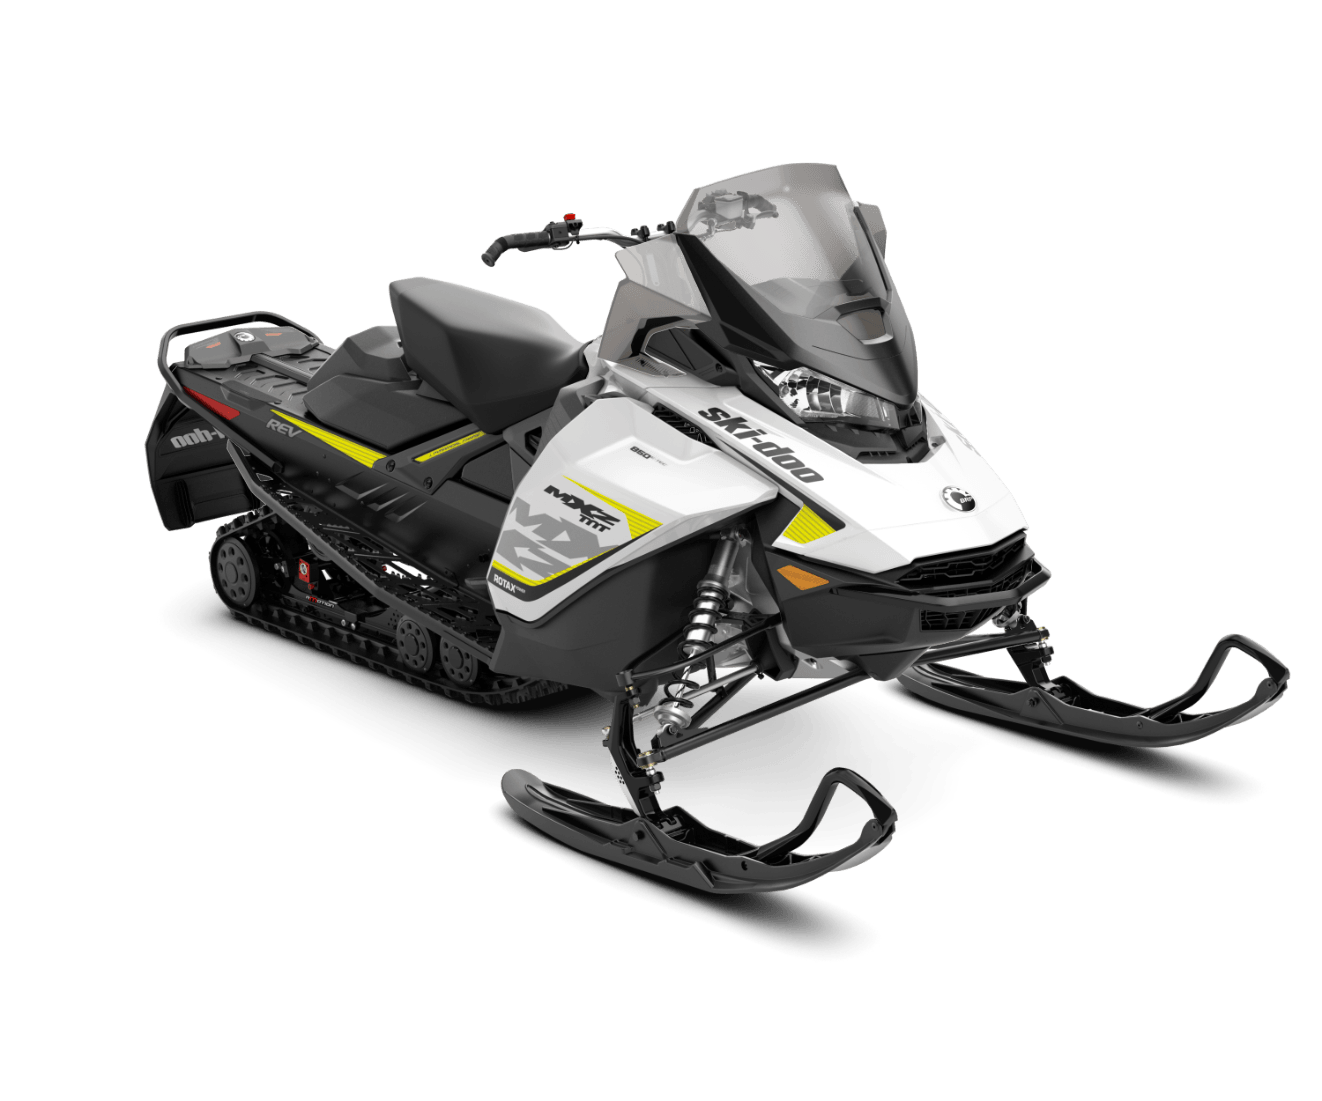 2018 Ski-Doo MXZ TNT 850 E-TEC in Inver Grove Heights, Minnesota